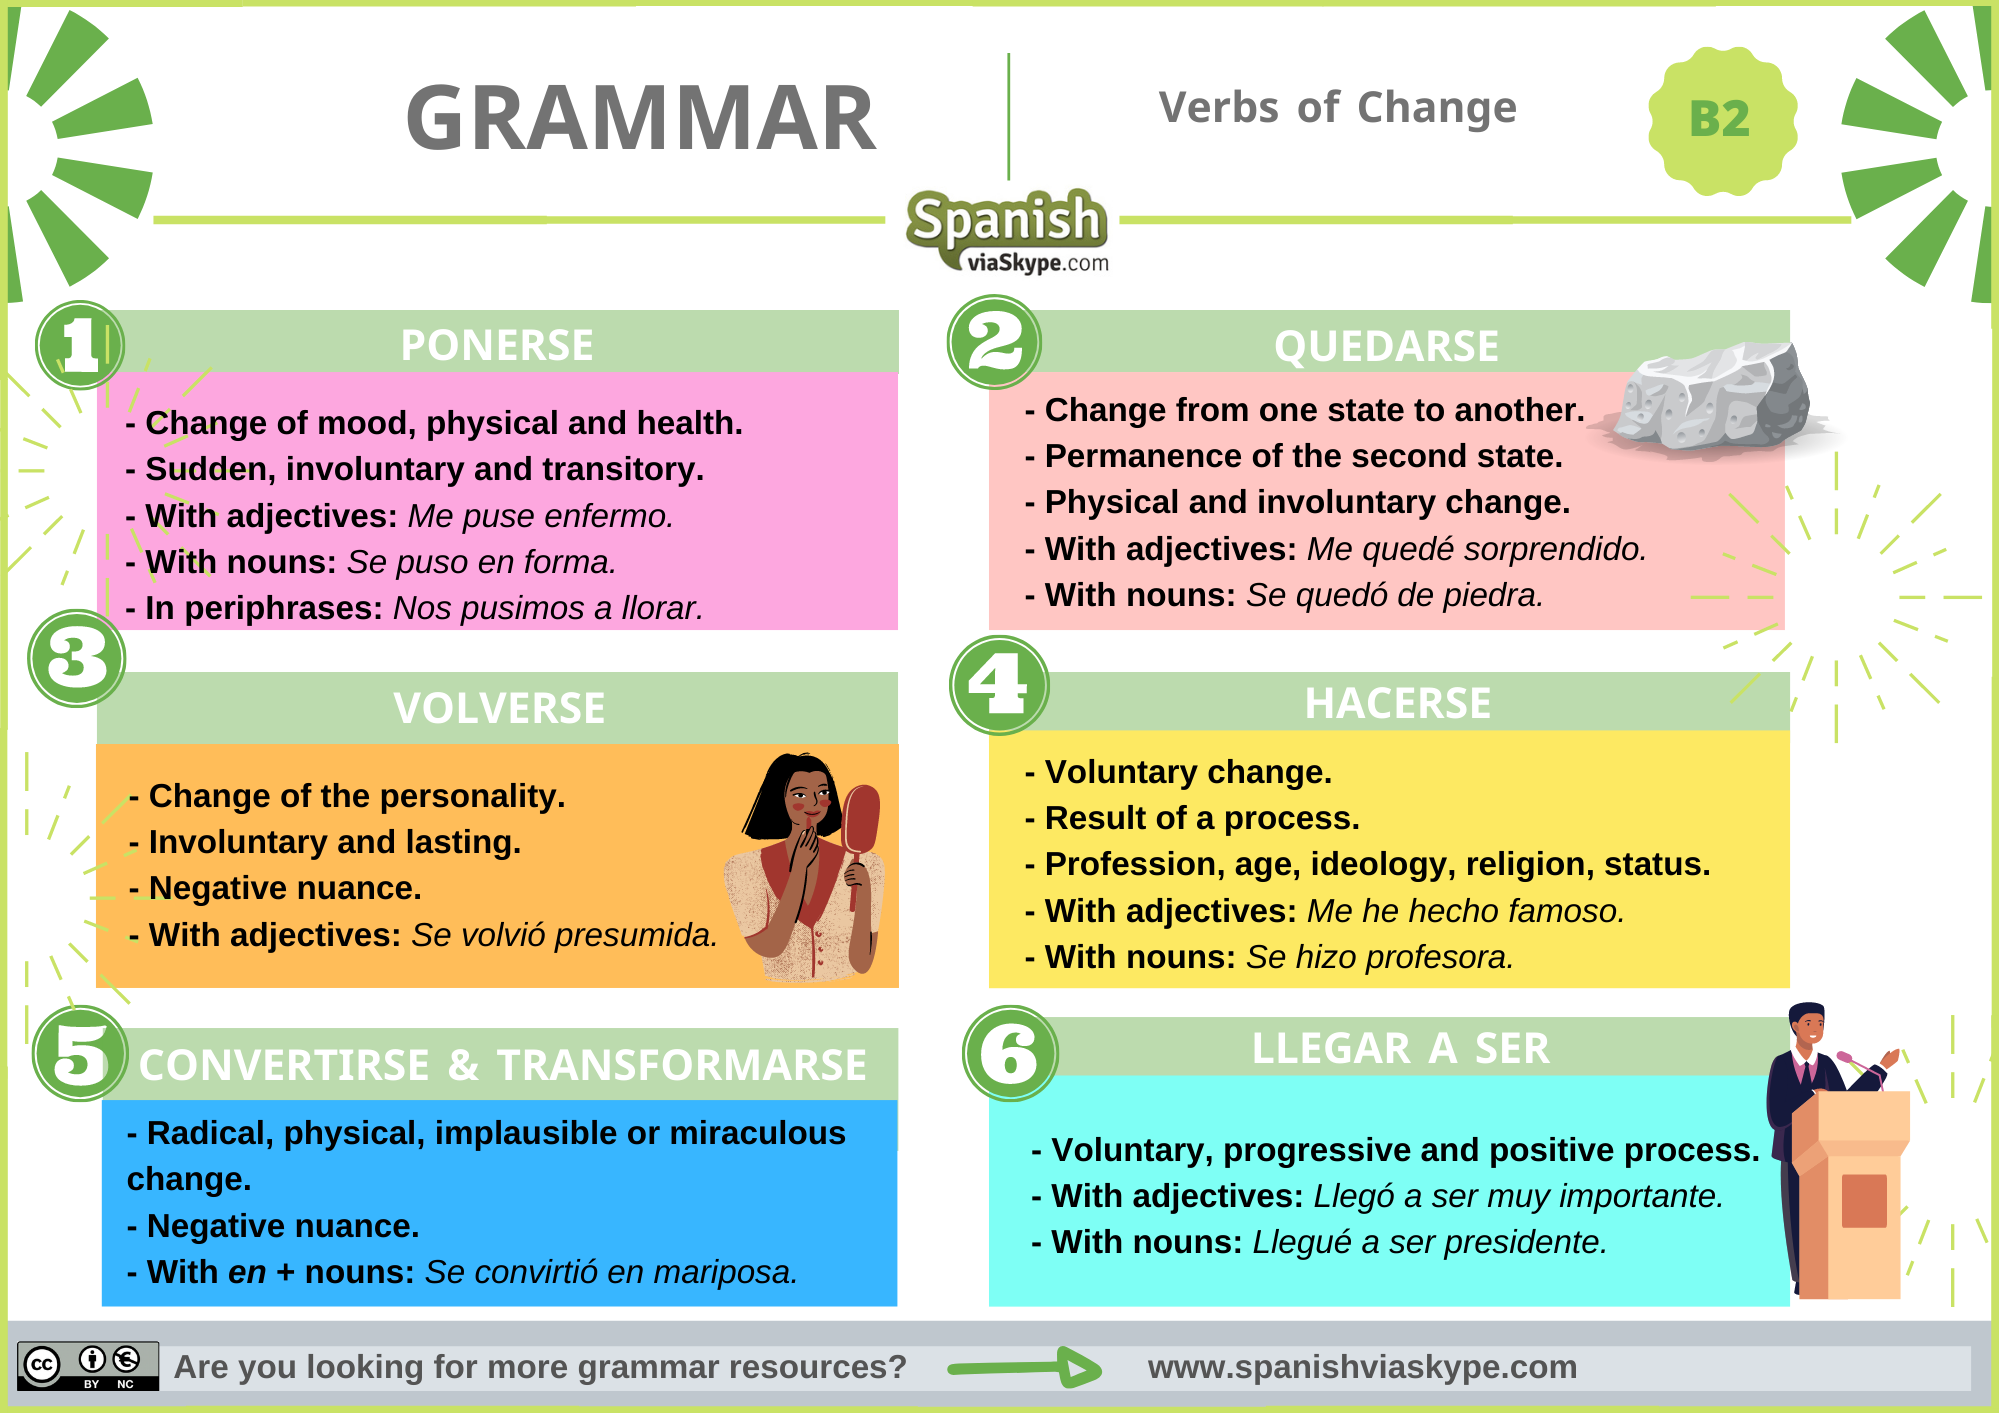 Infographic about the verbs of change in Spanish